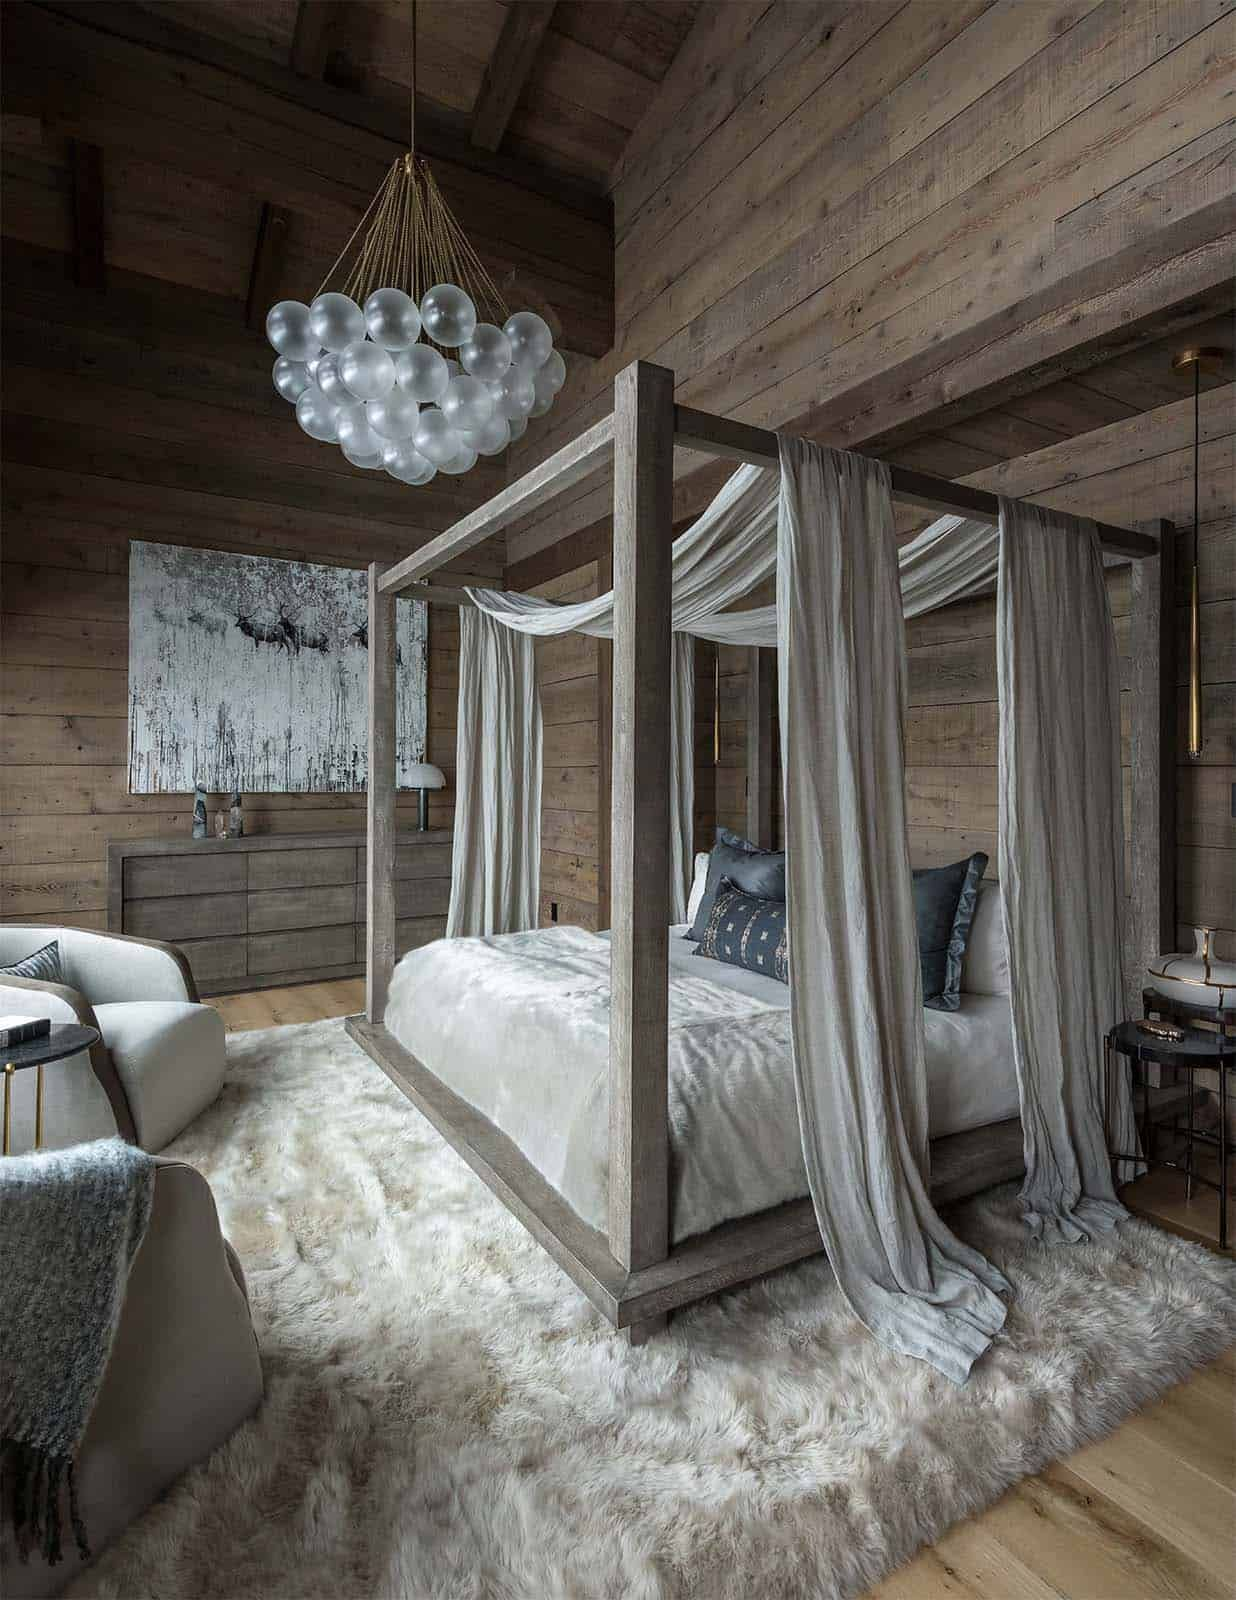 Swiss chalet-inspired home provides cozy refuge in snowy Montana #palletbedroomfurniture